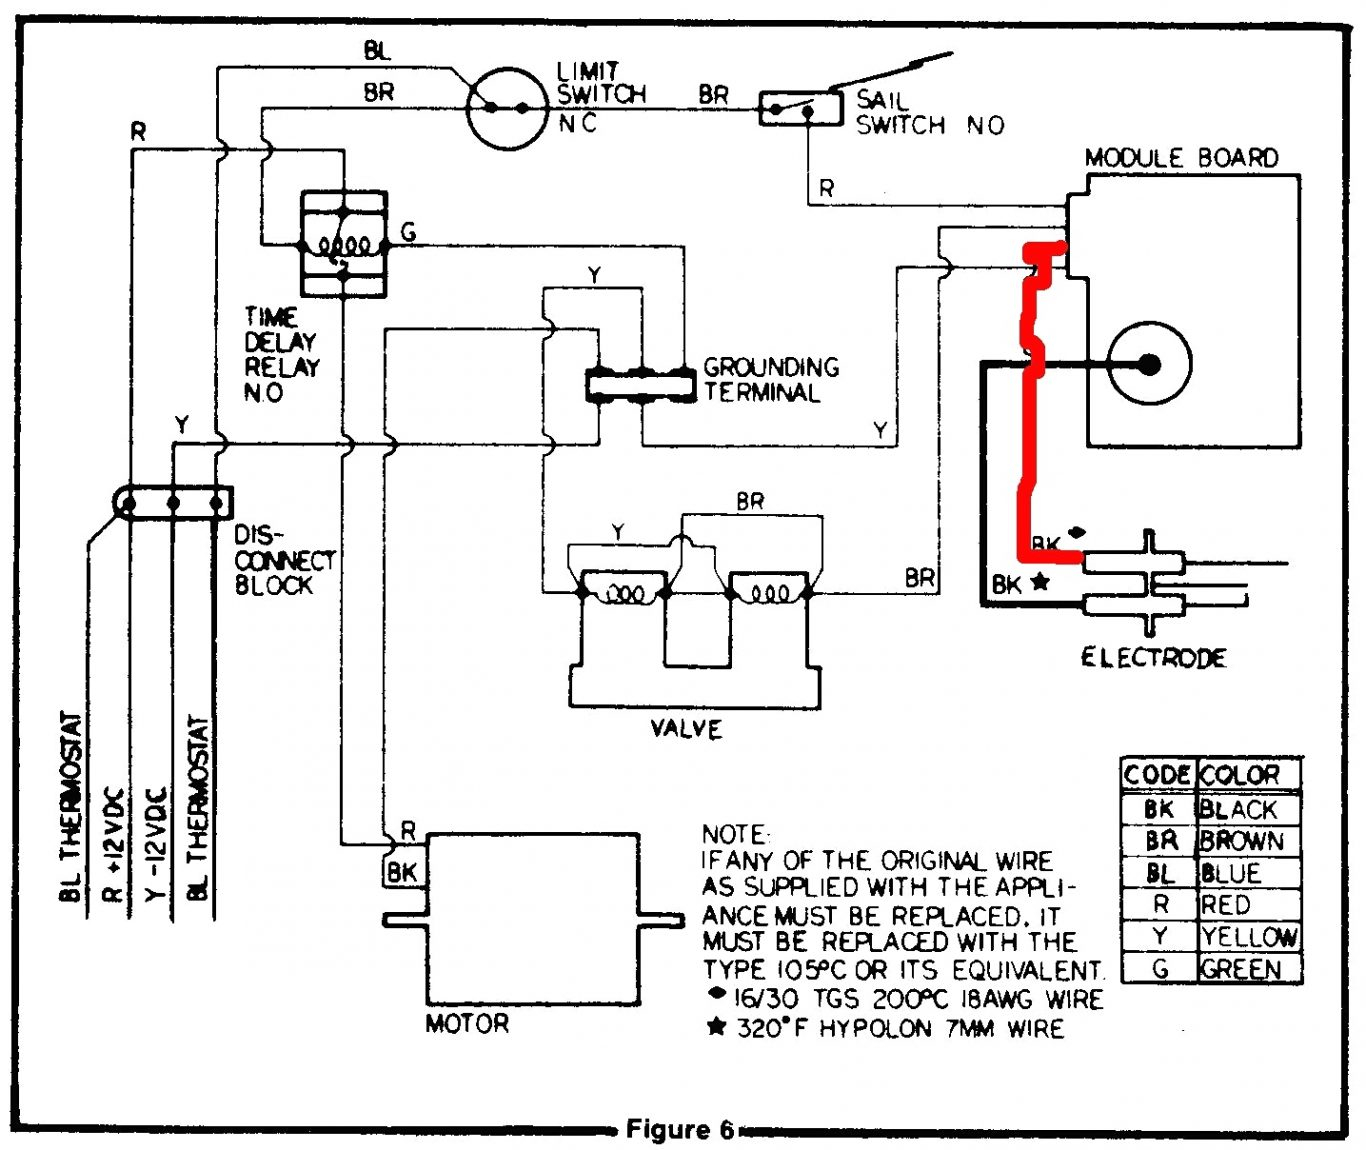 get coleman mach thermostat wiring diagram samplecoleman mach thermostat wiring diagram coleman evcon thermostat wiring diagram inspirational diagram coleman mach thermostating